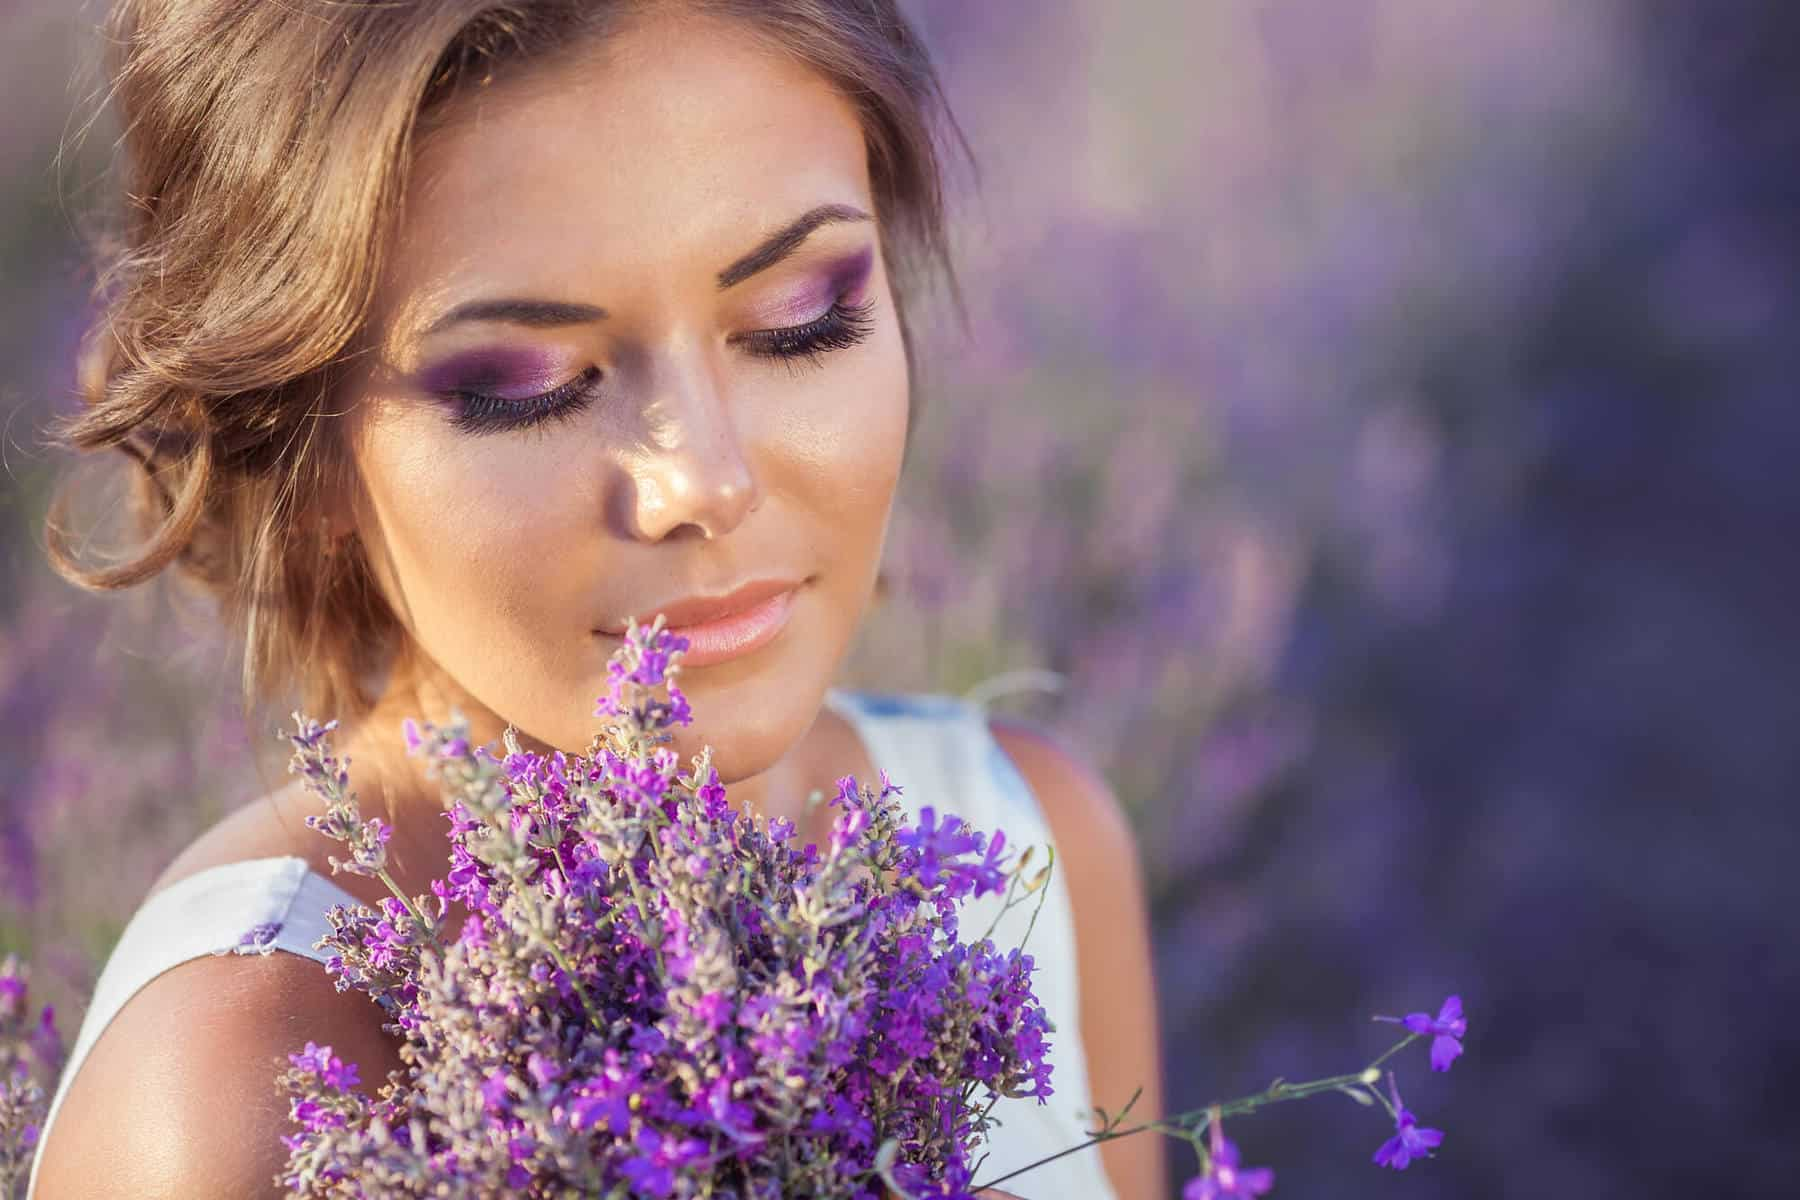 Woman relaxing with lavender